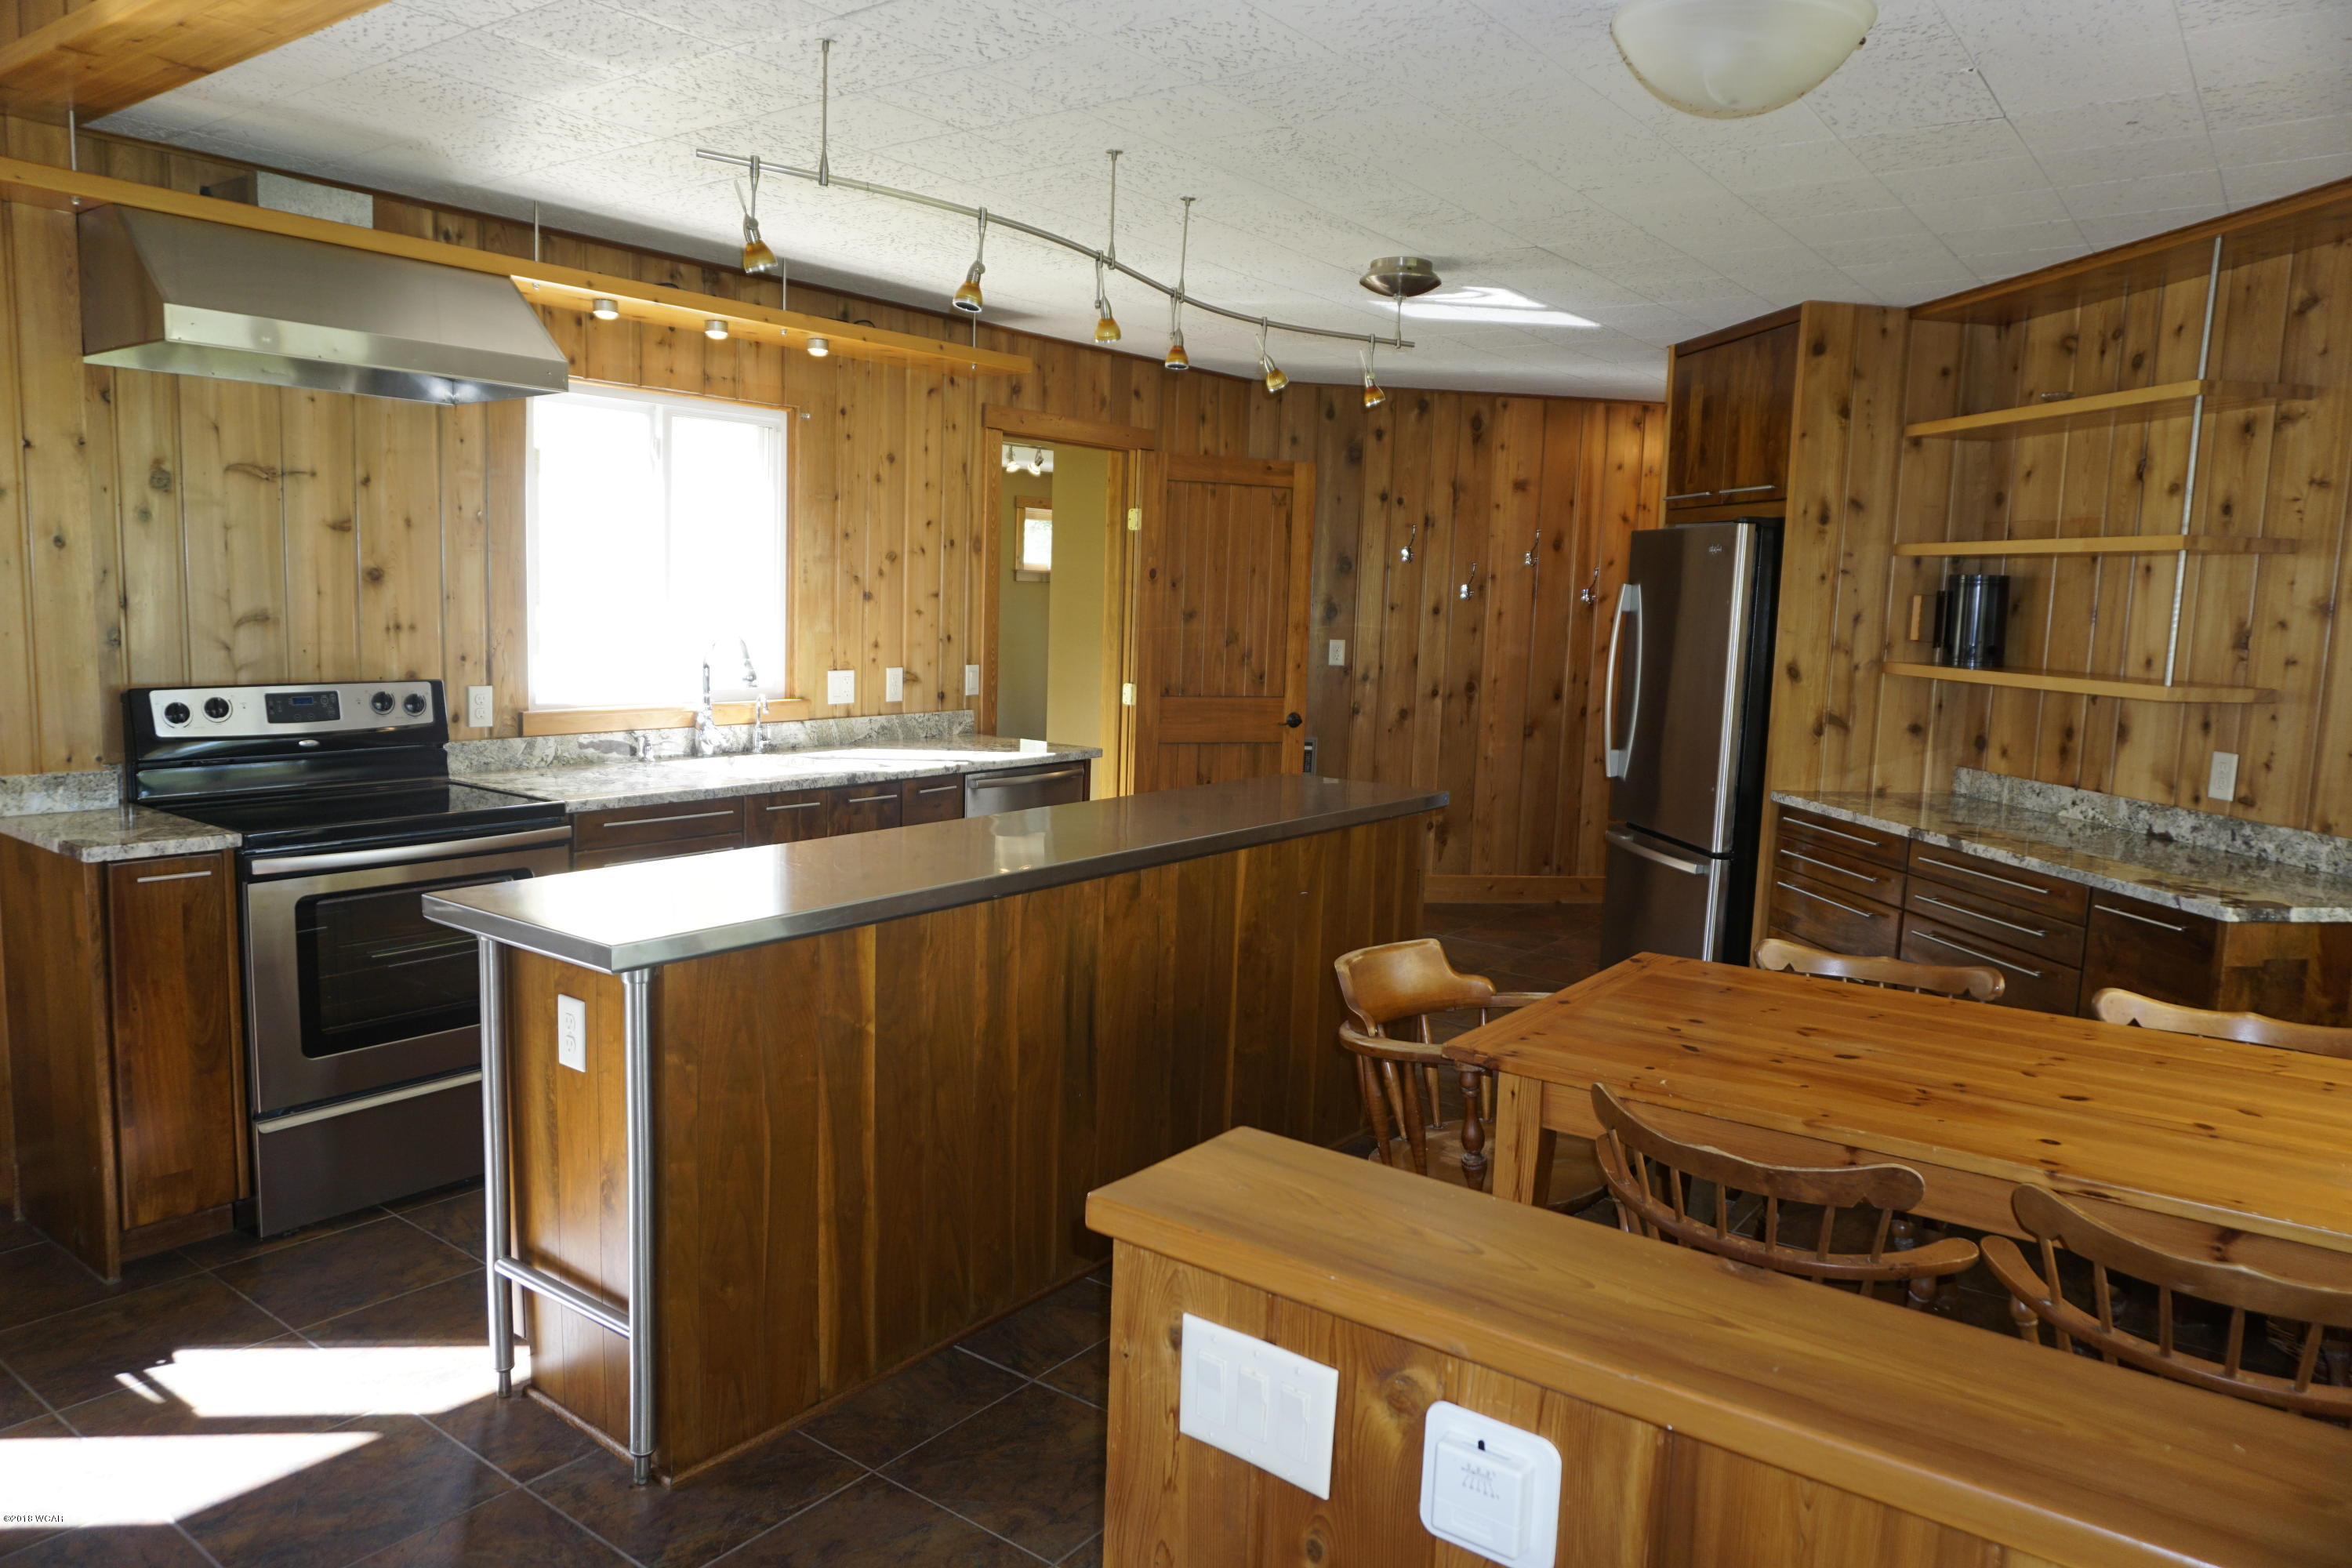 29402 Lilac Road,St. Joseph,2 Bedrooms Bedrooms,1 BathroomBathrooms,Single Family,Lilac Road,6032388